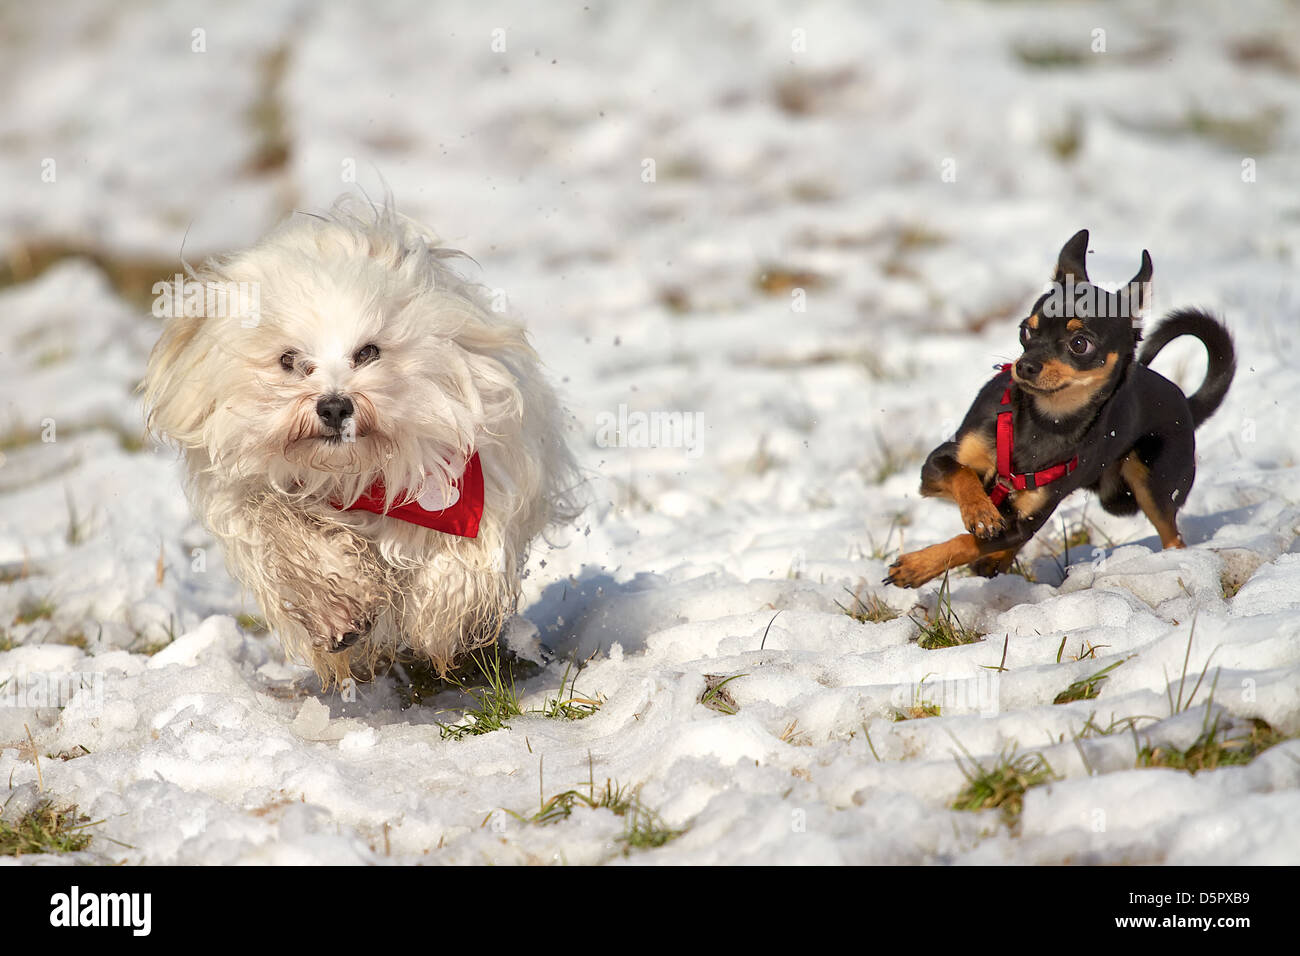 2 dogs playing in the snow, Havanese with red neckerchief and the Pinscher with red harness. - Stock Image